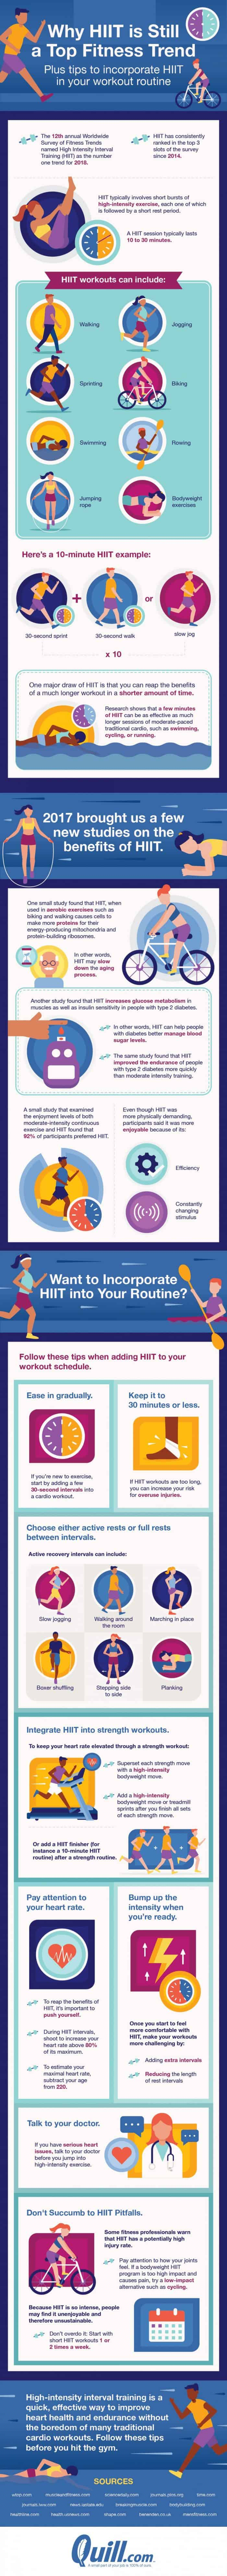 HIIT workouts infographic